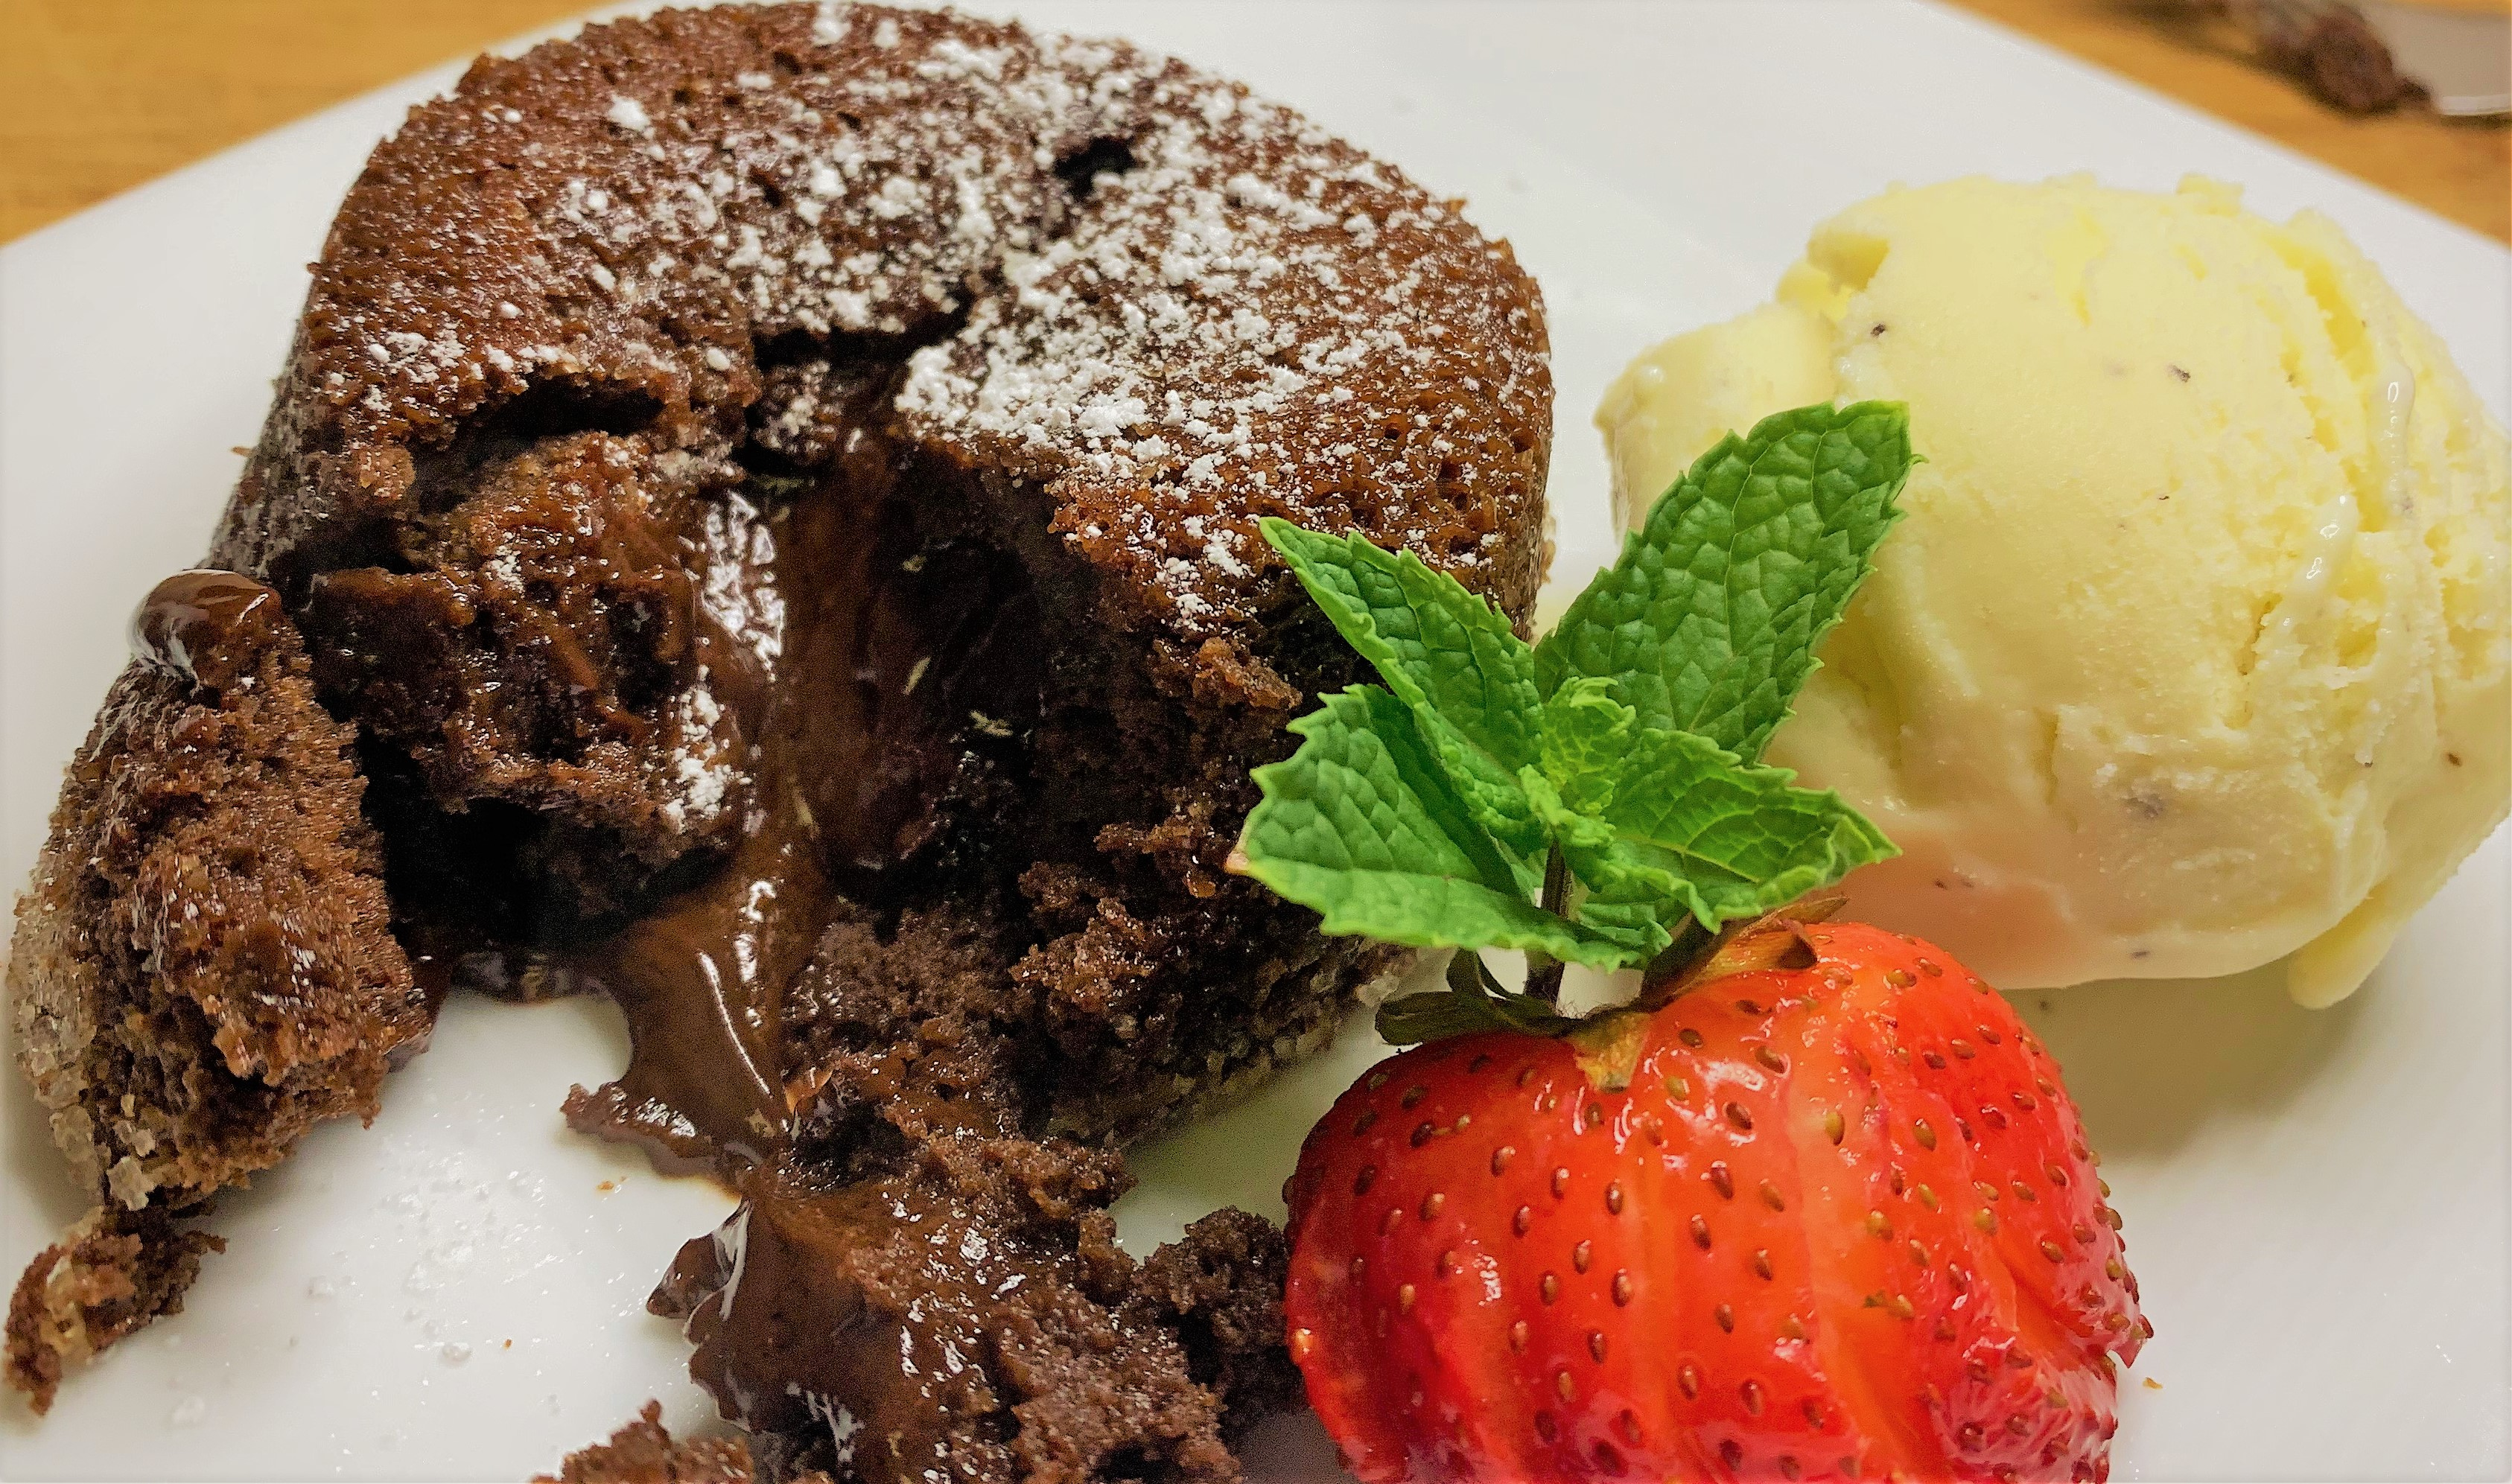 Luxurious goodness flowing from our Molten Chocolate Cake